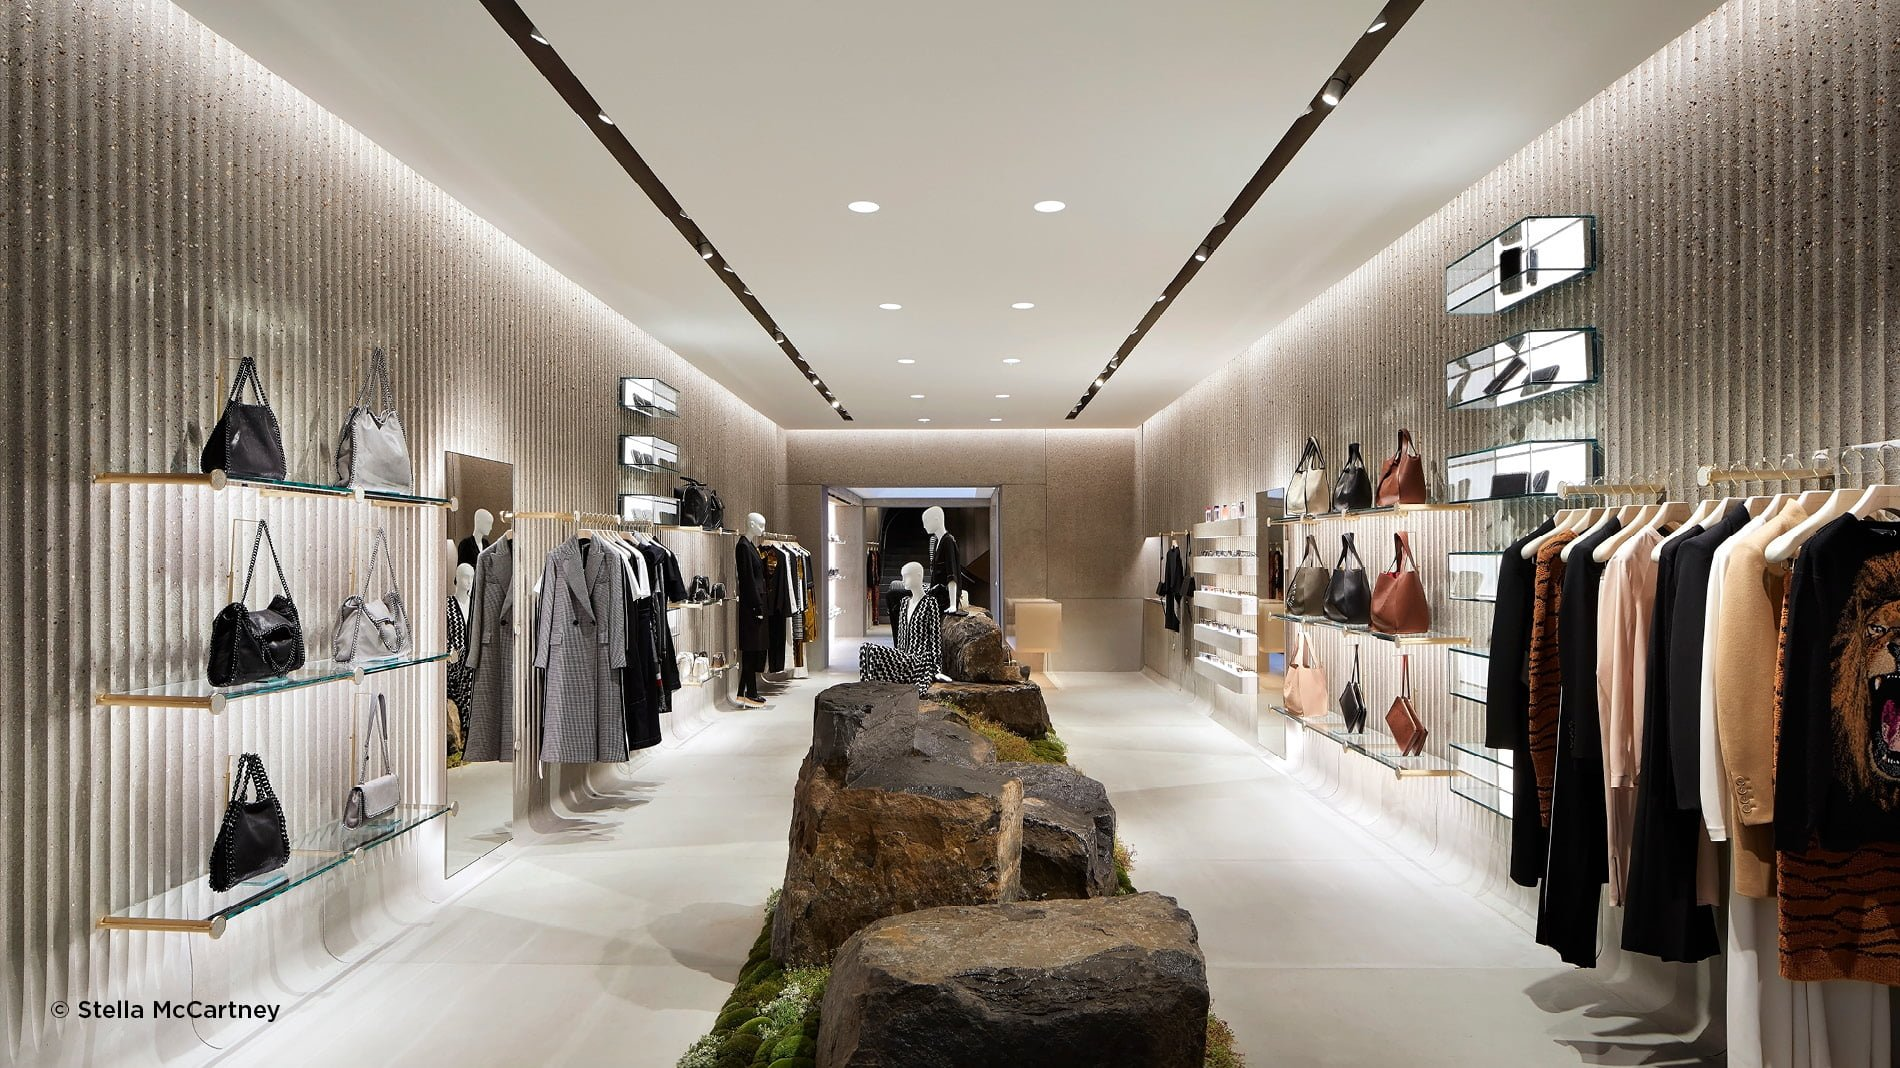 Interior of Stella McCartney's new sustainably designed Old Bond Street Store in London